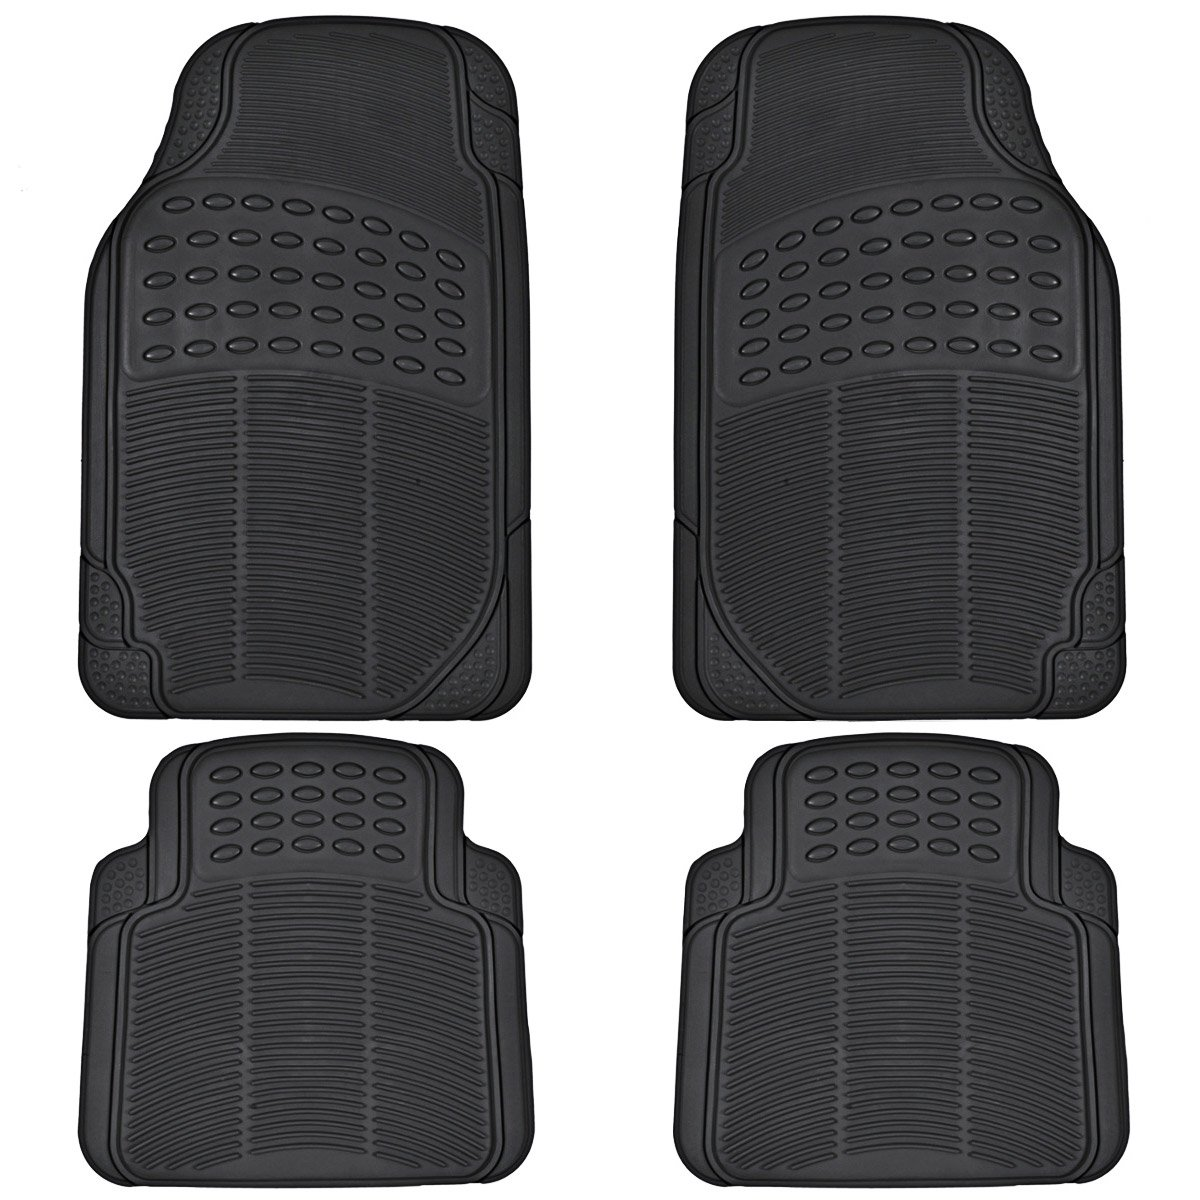 Suv Floor Mats >> Bdk All Weather Rubber Floor Mats For Car Suv Truck 4 Pieces Set Front Rear Trimmable Heavy Duty Protection Black Mt 654 Bk Aces